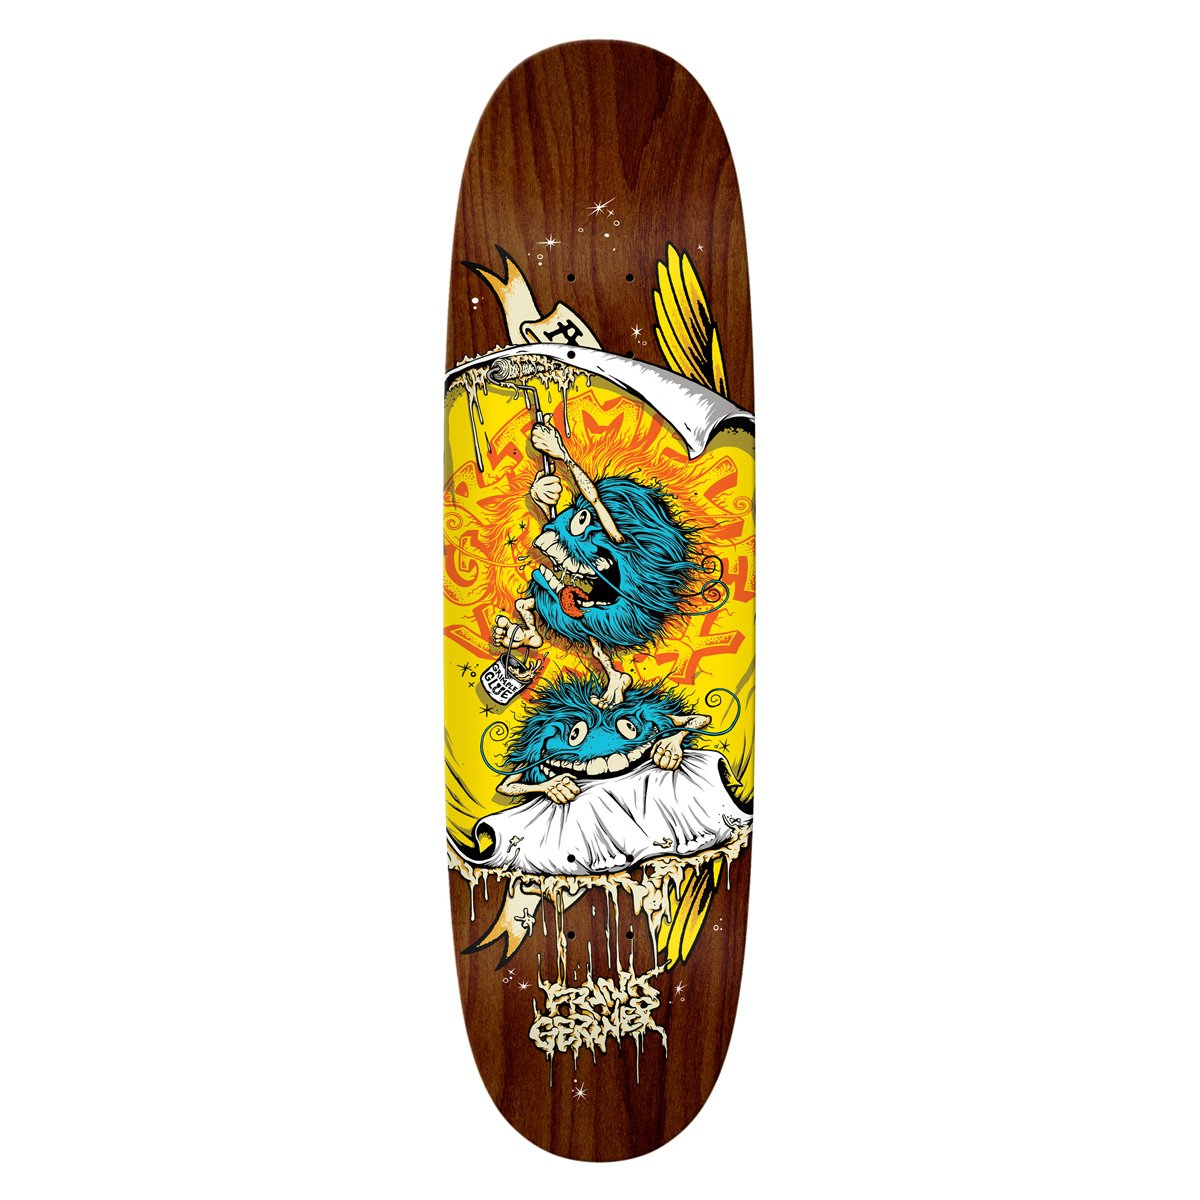 Anti-Hero Grimple Stix Glue Deck Product Photo #1